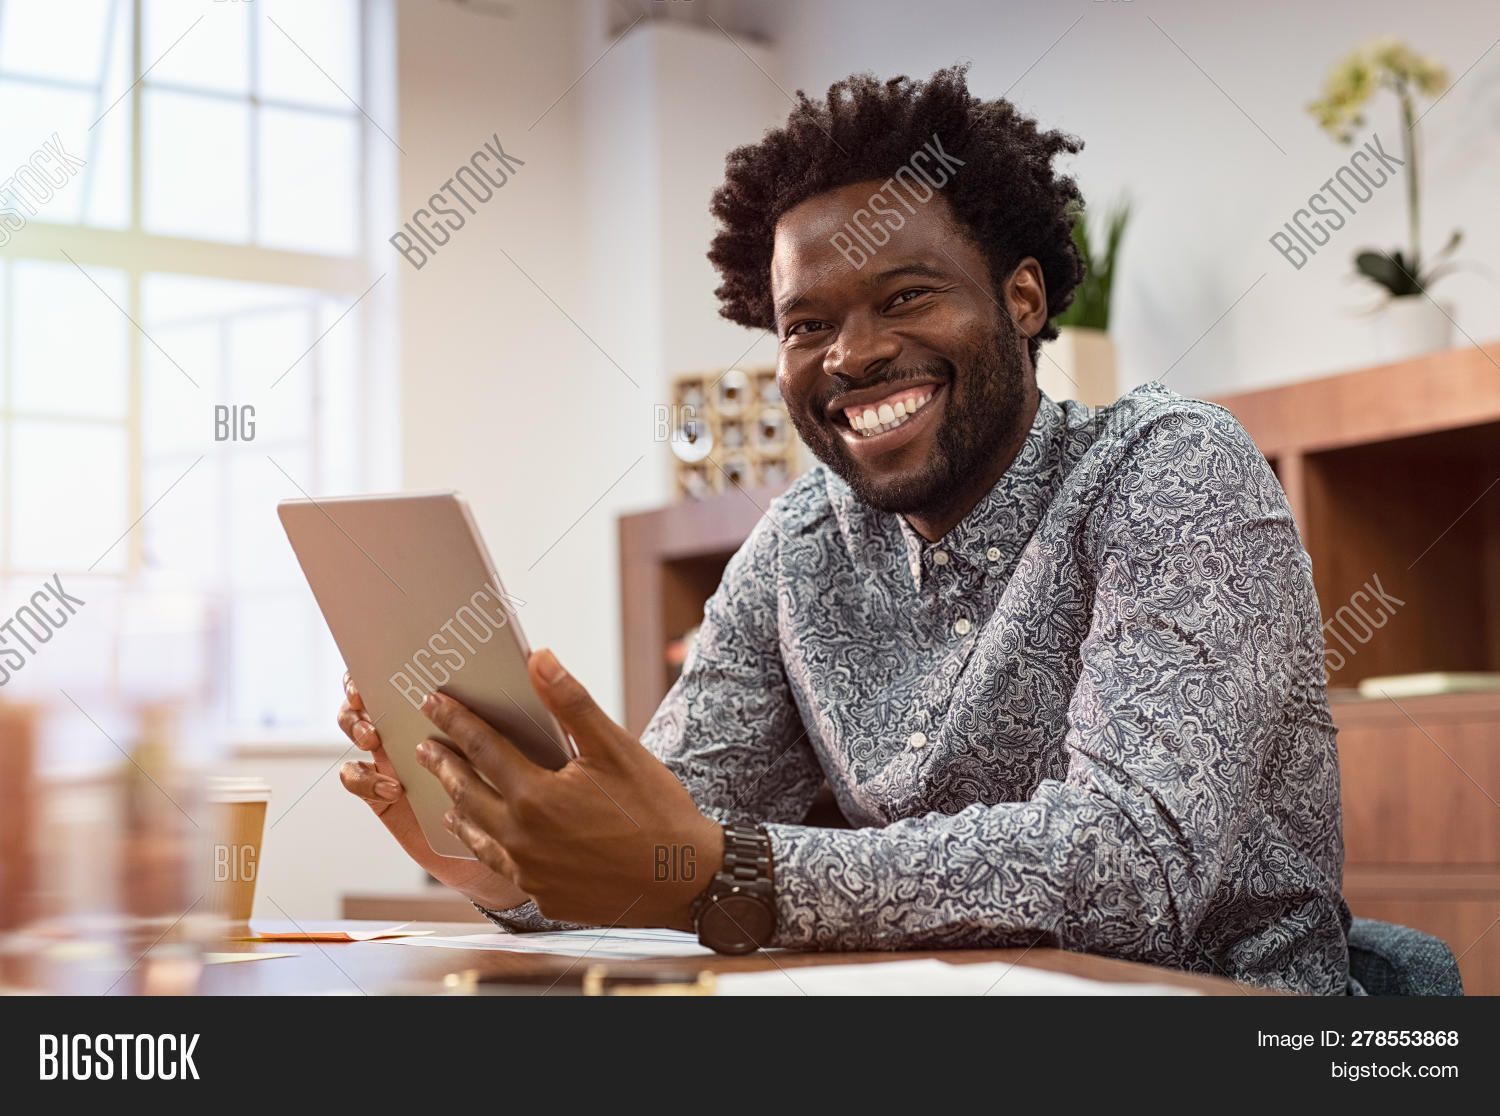 30s,african,african american,american,black,black man,business,business casual,business man,businessman,casual,casual business,checking,cheerful,co working,communication,computer,confident,connection,creative office,desk,digital,digital tablet,electronic,happy,holding,internet,looking,looking at camera,mature,mid adult man,modern office,network,office,people,portrait,reliability,sitting,smart casual,smile,successful businessman,tablet,technology,toothy smile,using,using digital tablet,wireless,work,young,young man